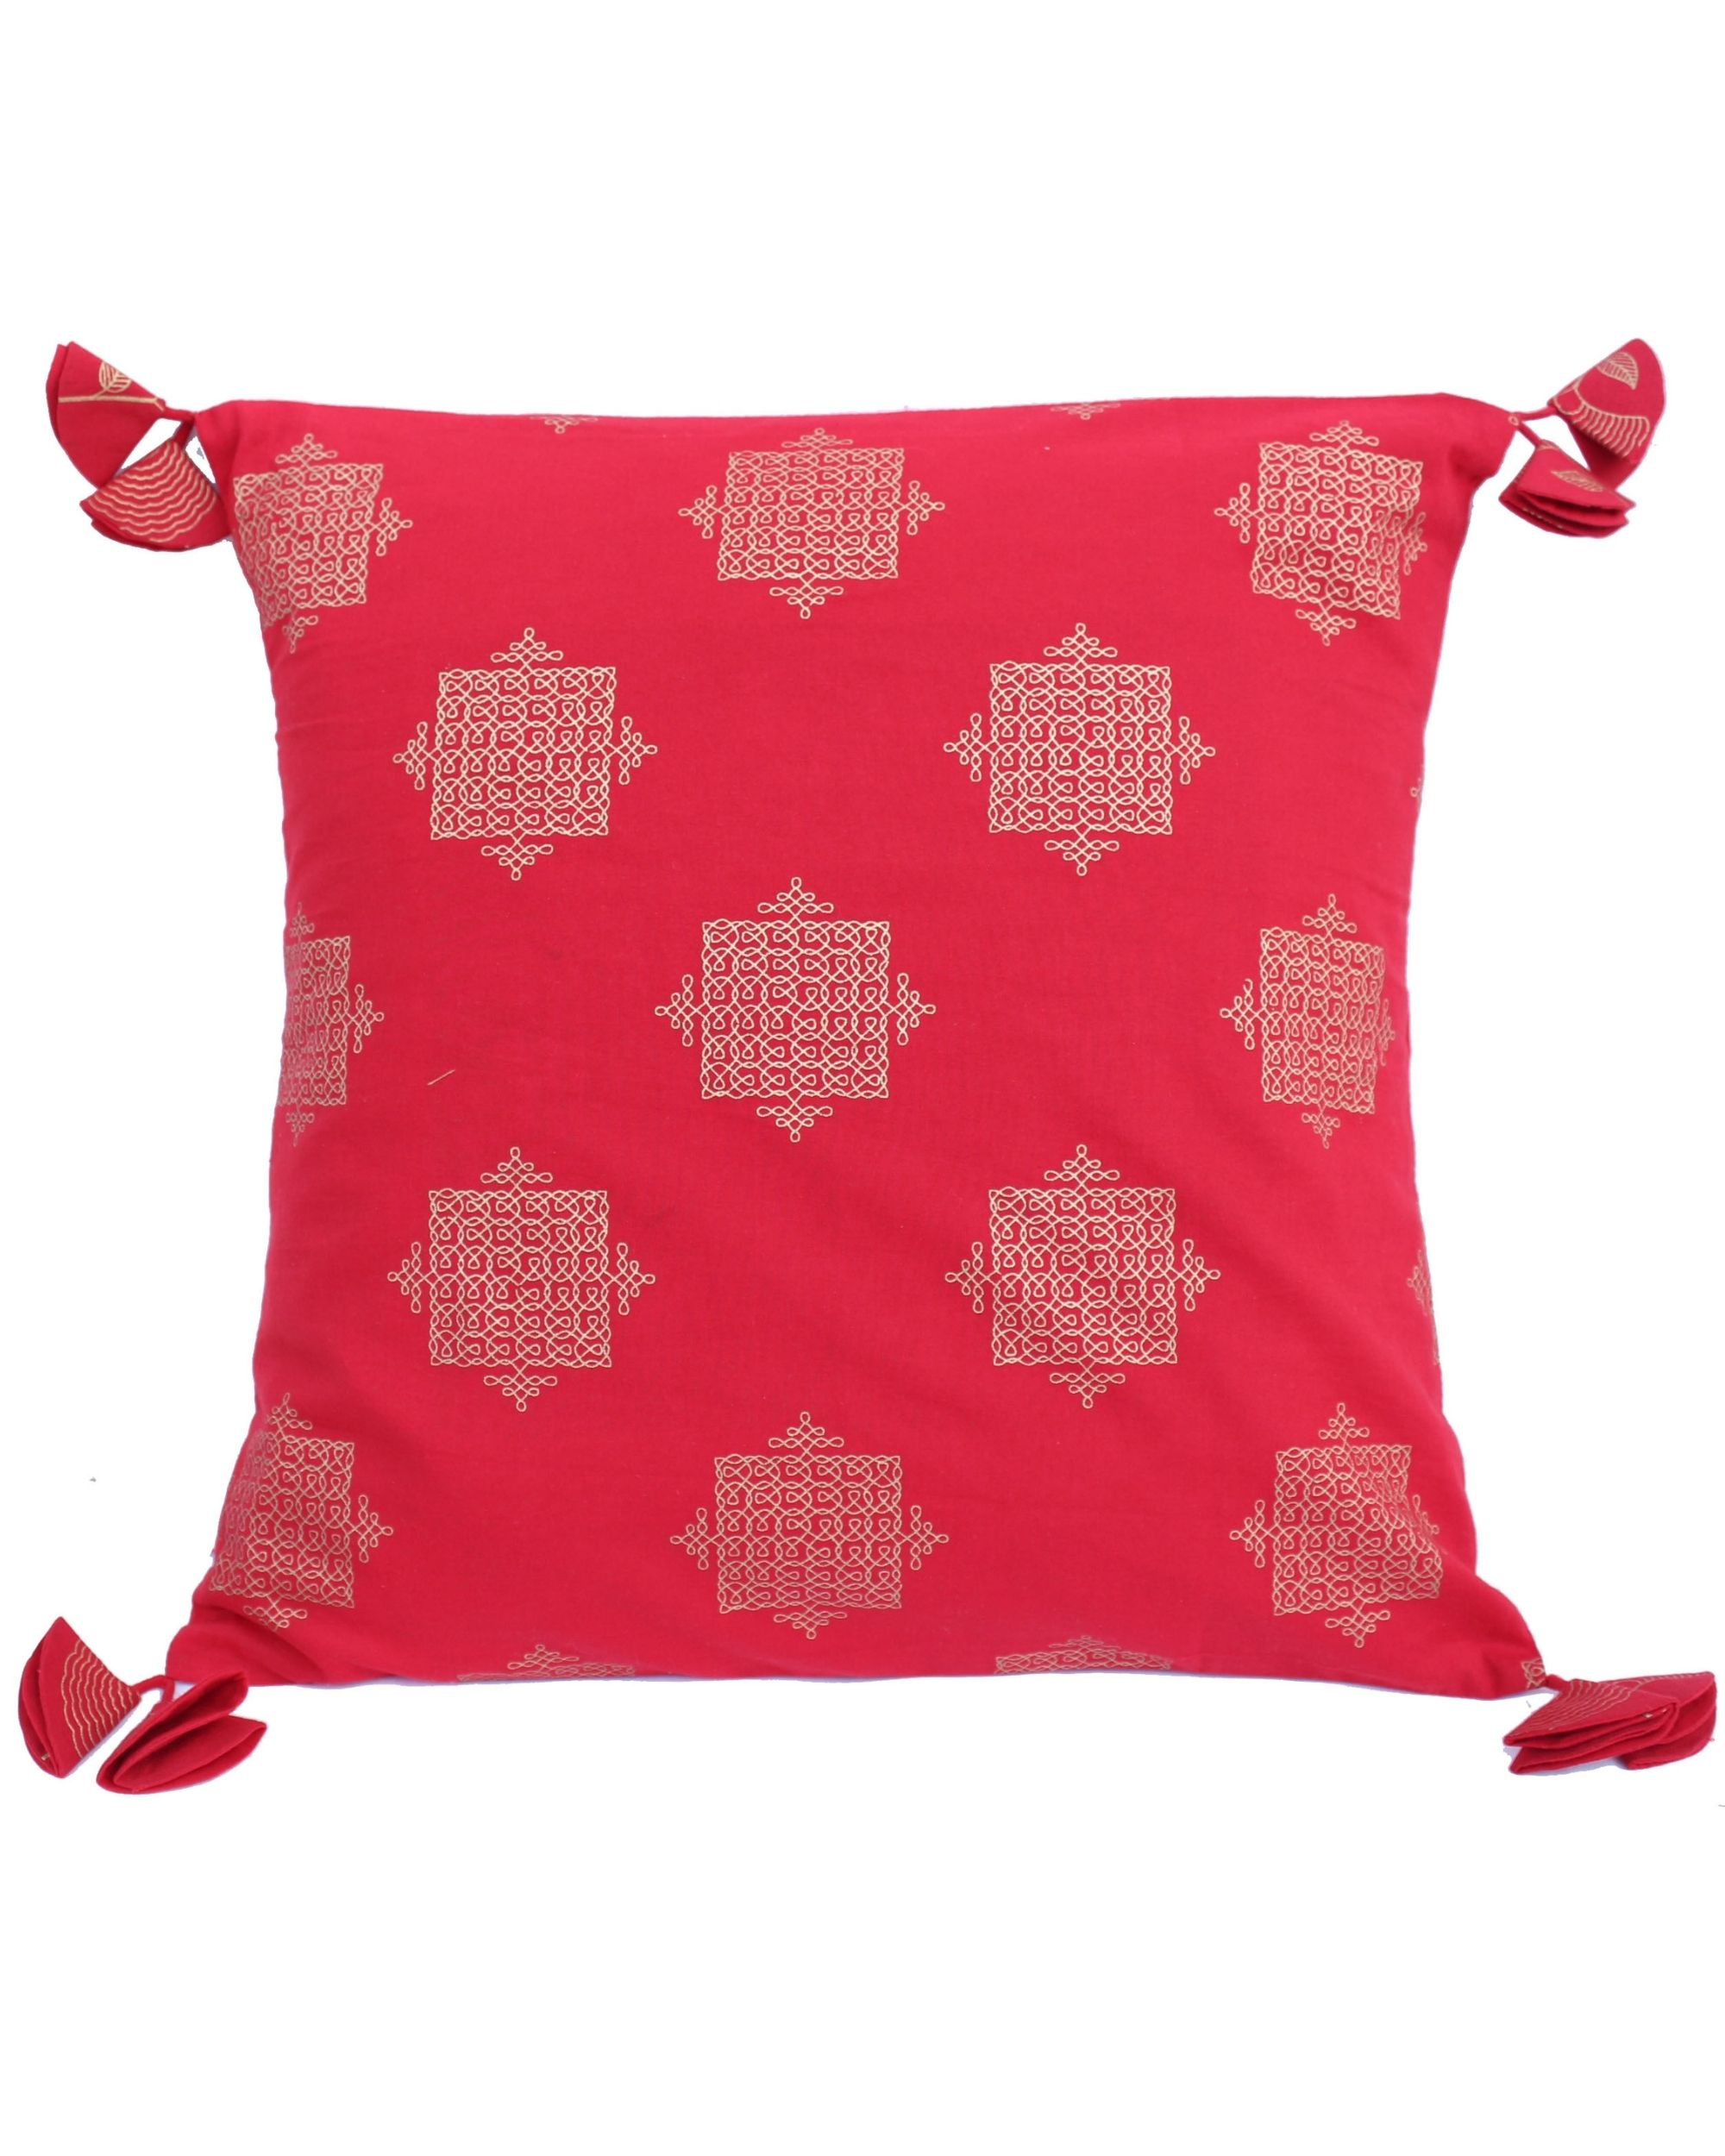 Red and golden jaali printed cushion cover - set of two (small)